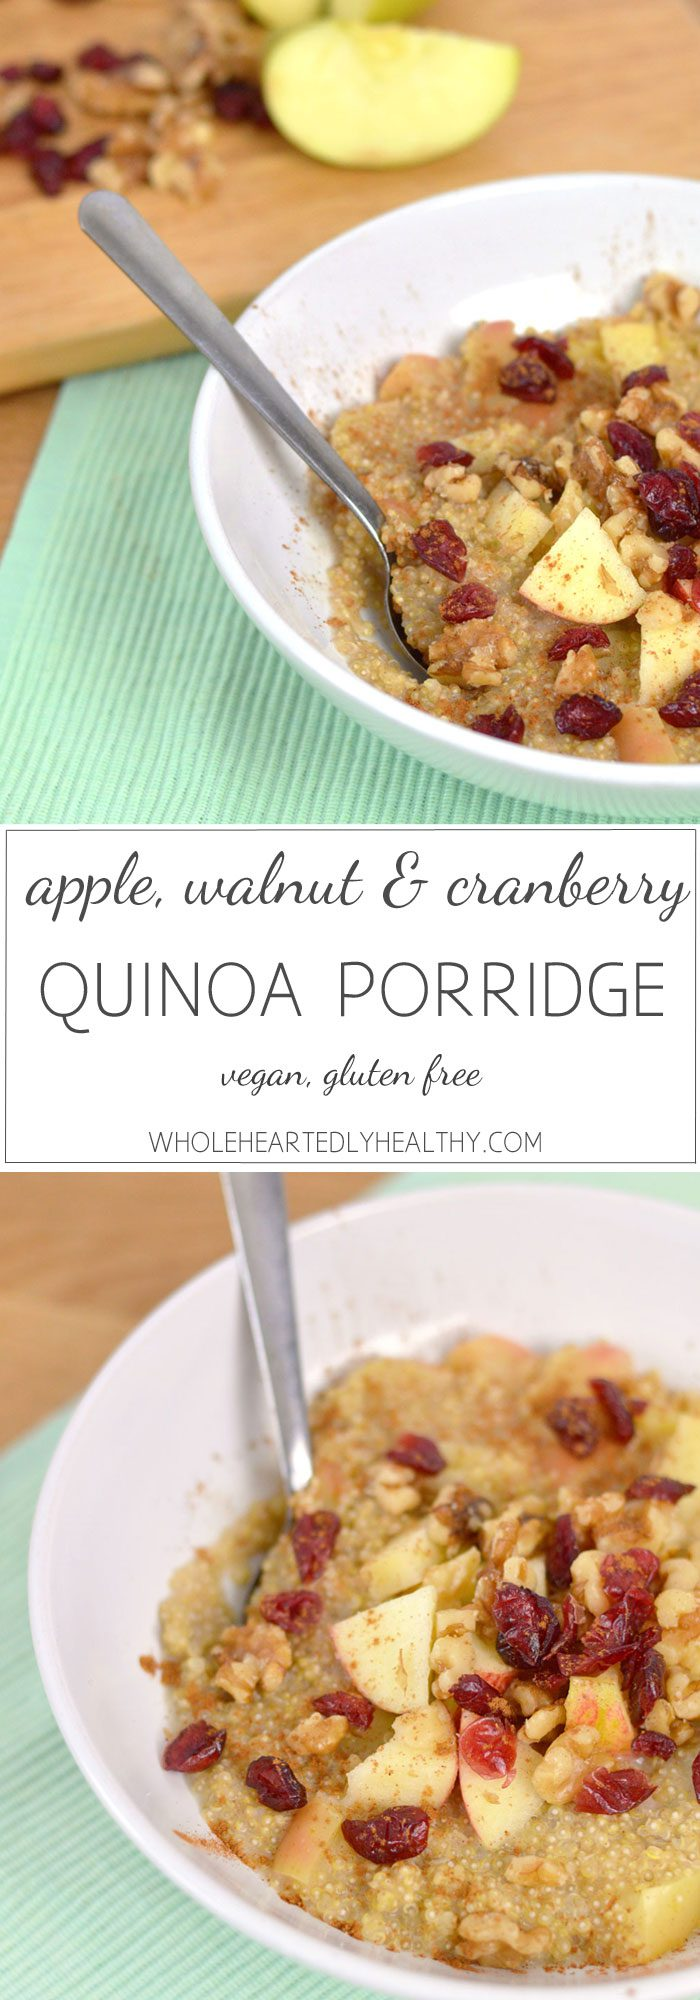 Apple walnut and cranberry quinoa porridge